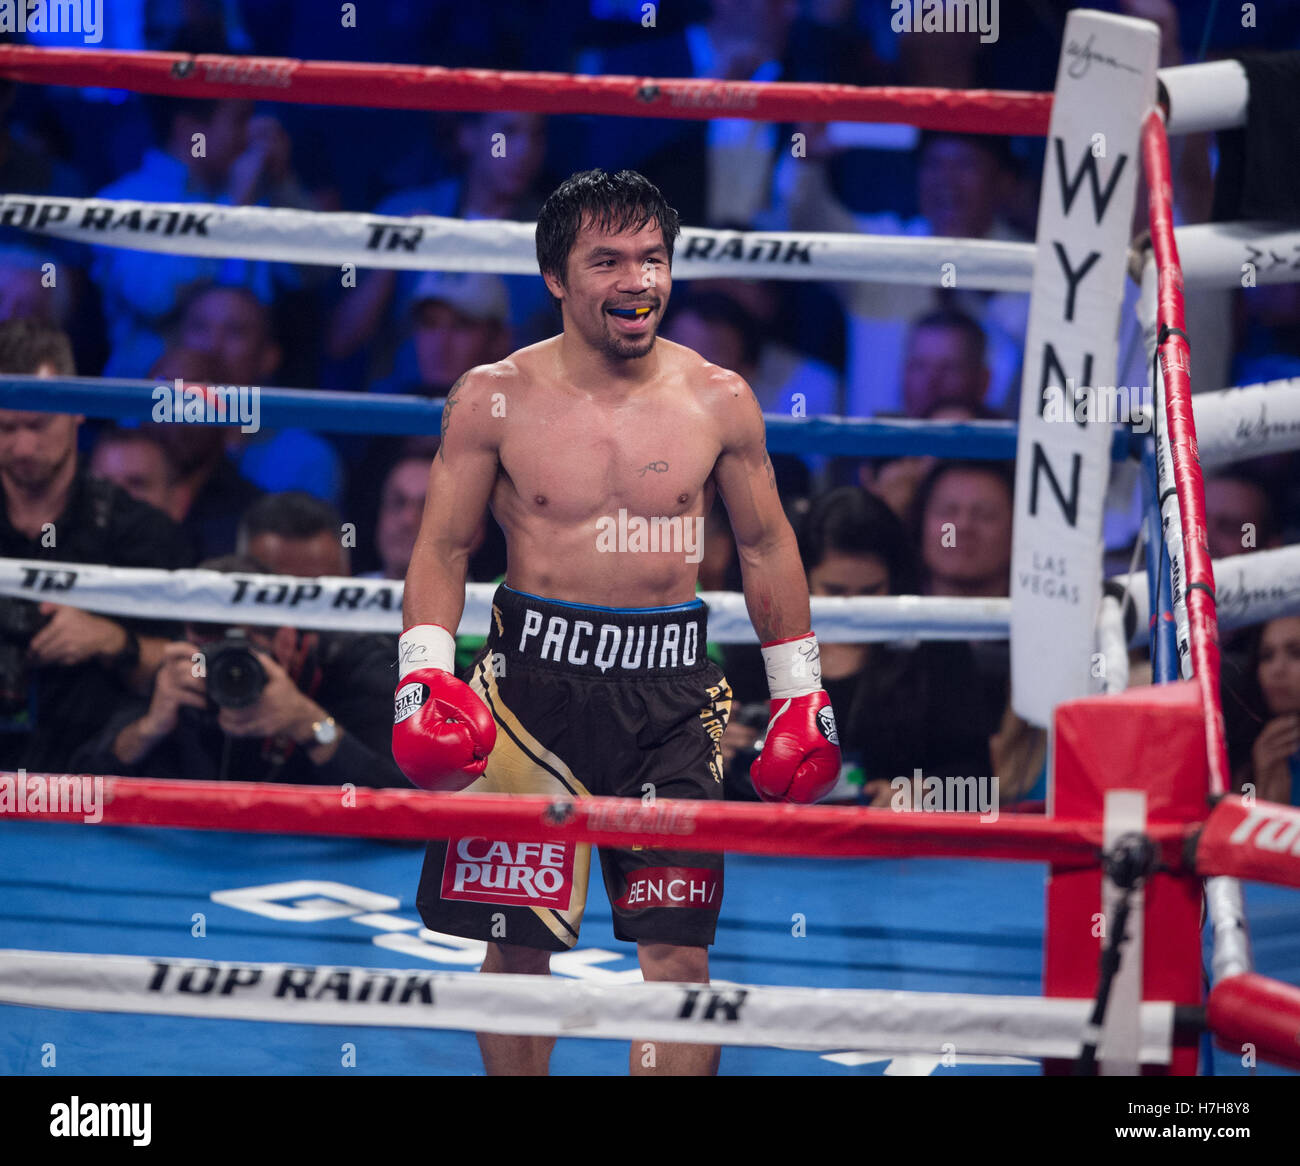 Manny Pacquiao Stock Photos & Manny Pacquiao Stock Images